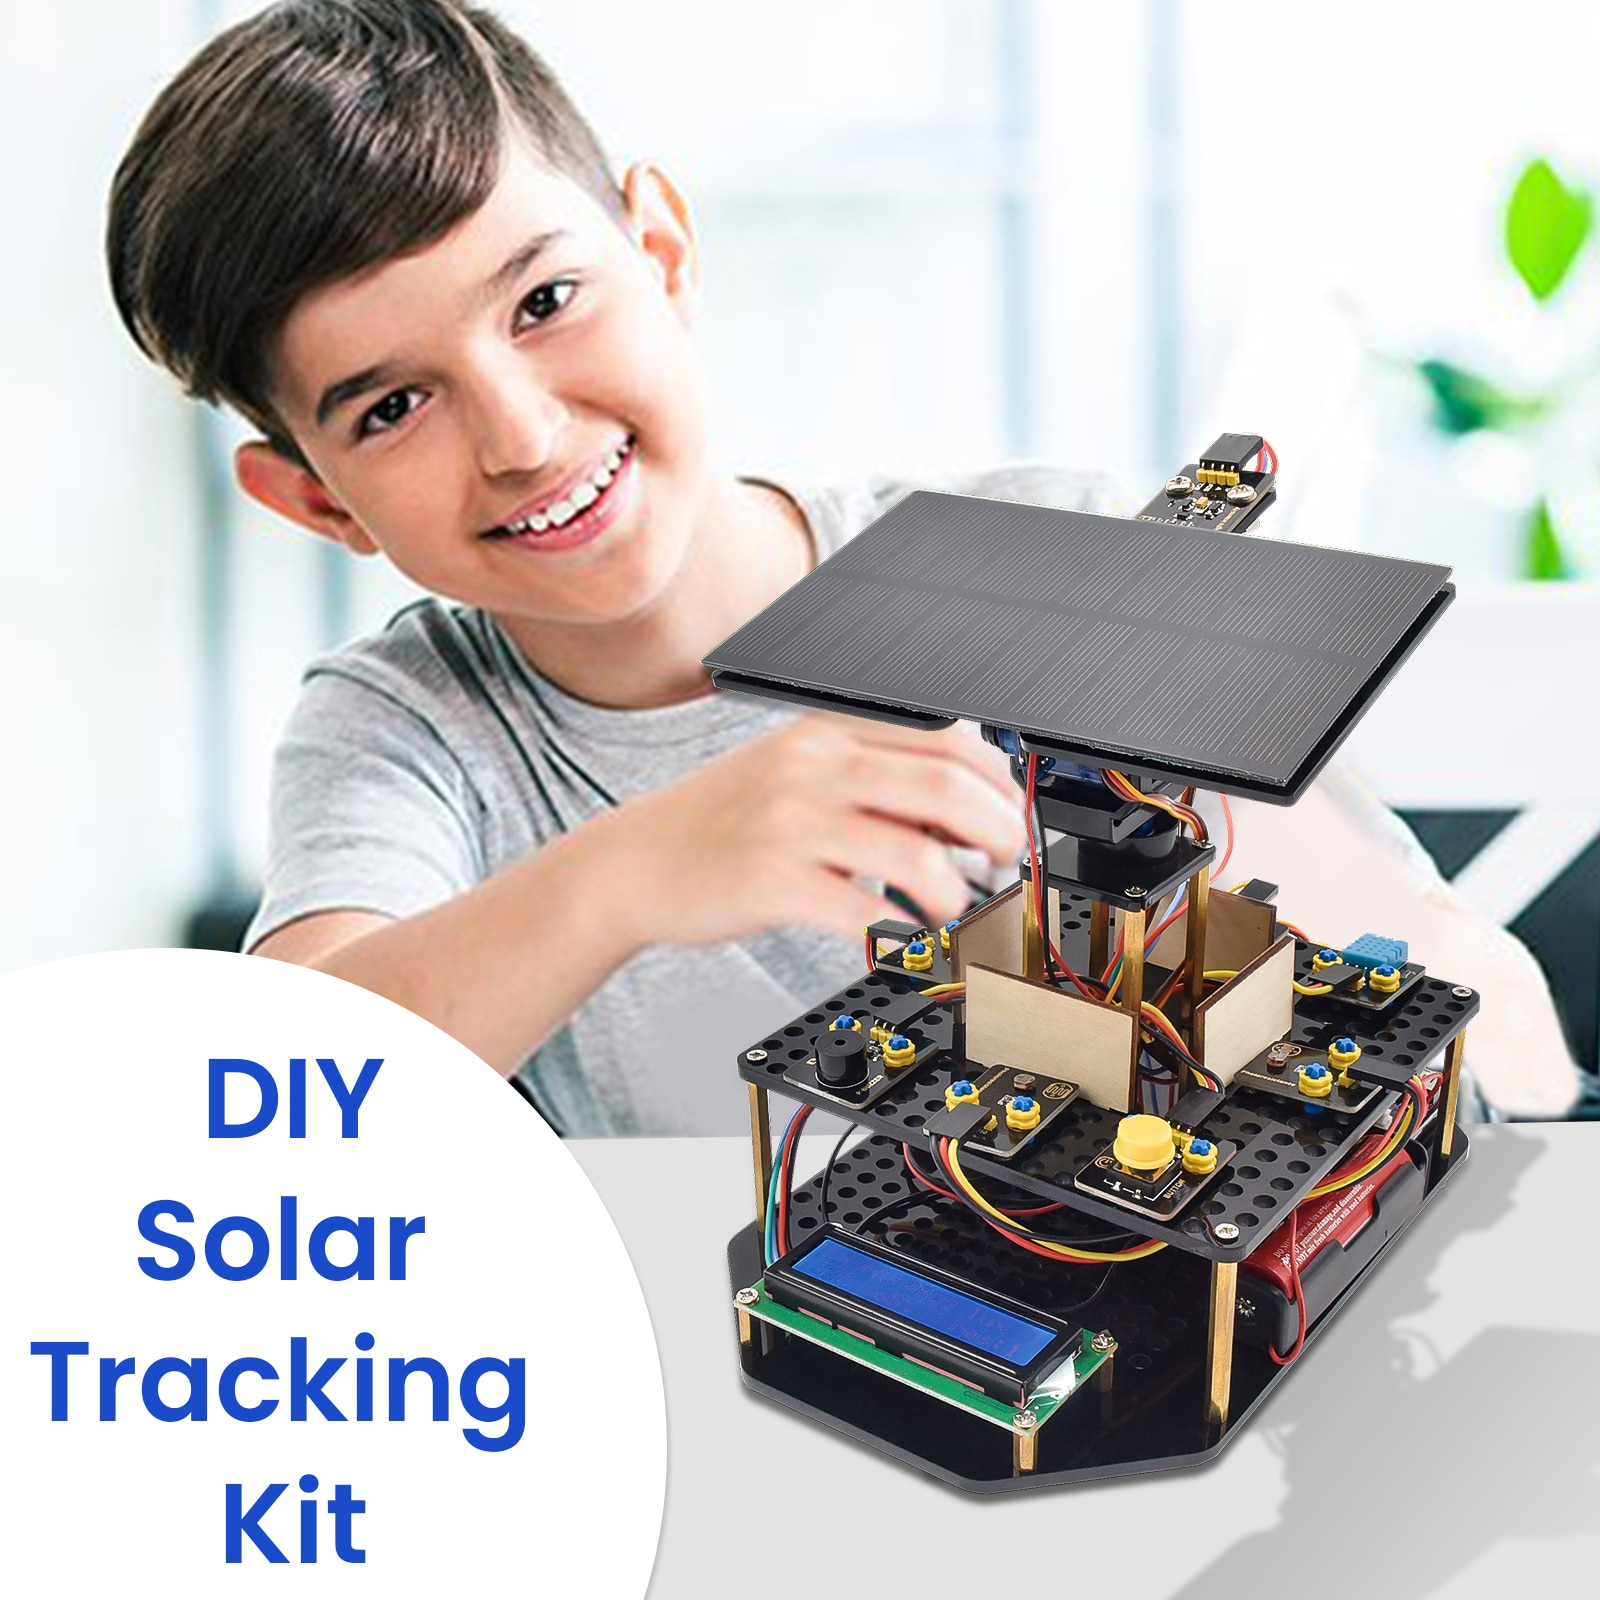 2021 New ! Keyestudio For Arduino Smart Solar Tracking Kit Can Use For Mobile Phone Charging Starter Project DIY STEM Toy